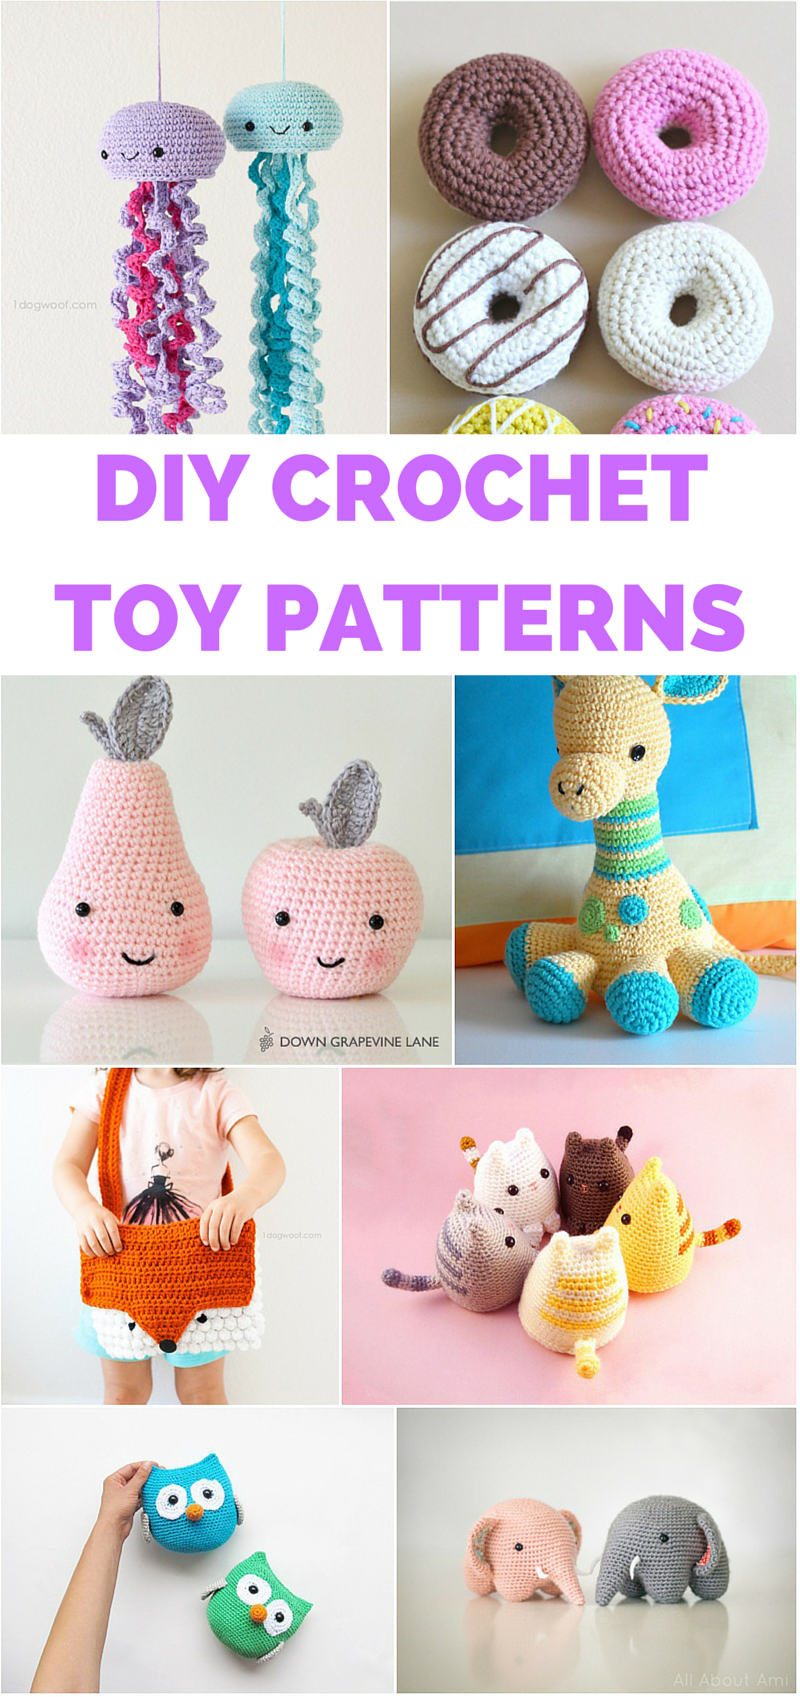 12 DARLING CROCHET TOYS TO MAKE FOR KIDS WITH FREE PATTERNS #handmadetoys